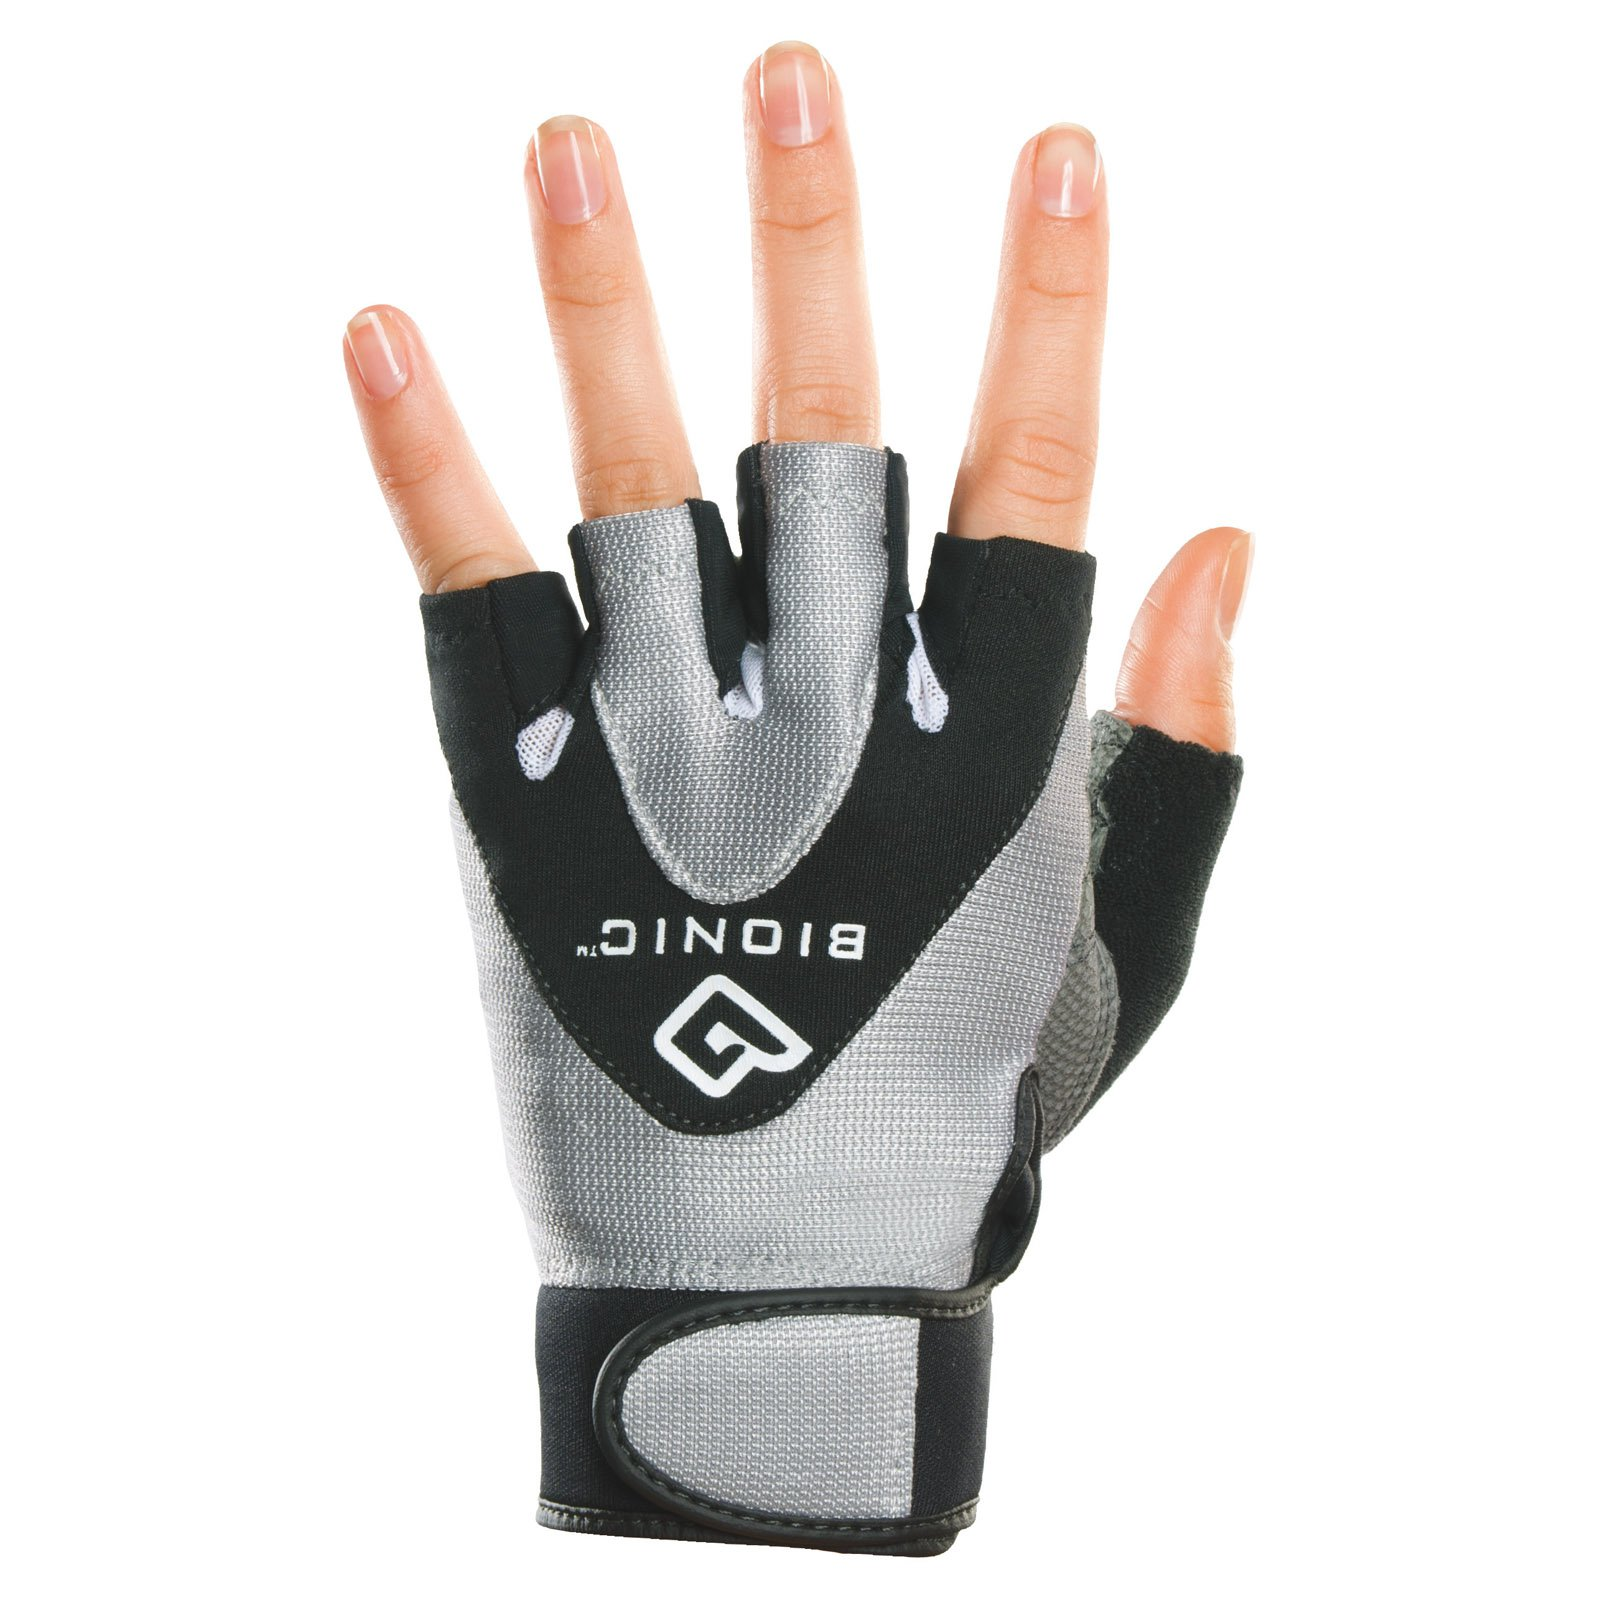 Bionic Womens StableGrip Half-Finger Fitness Gloves - Large